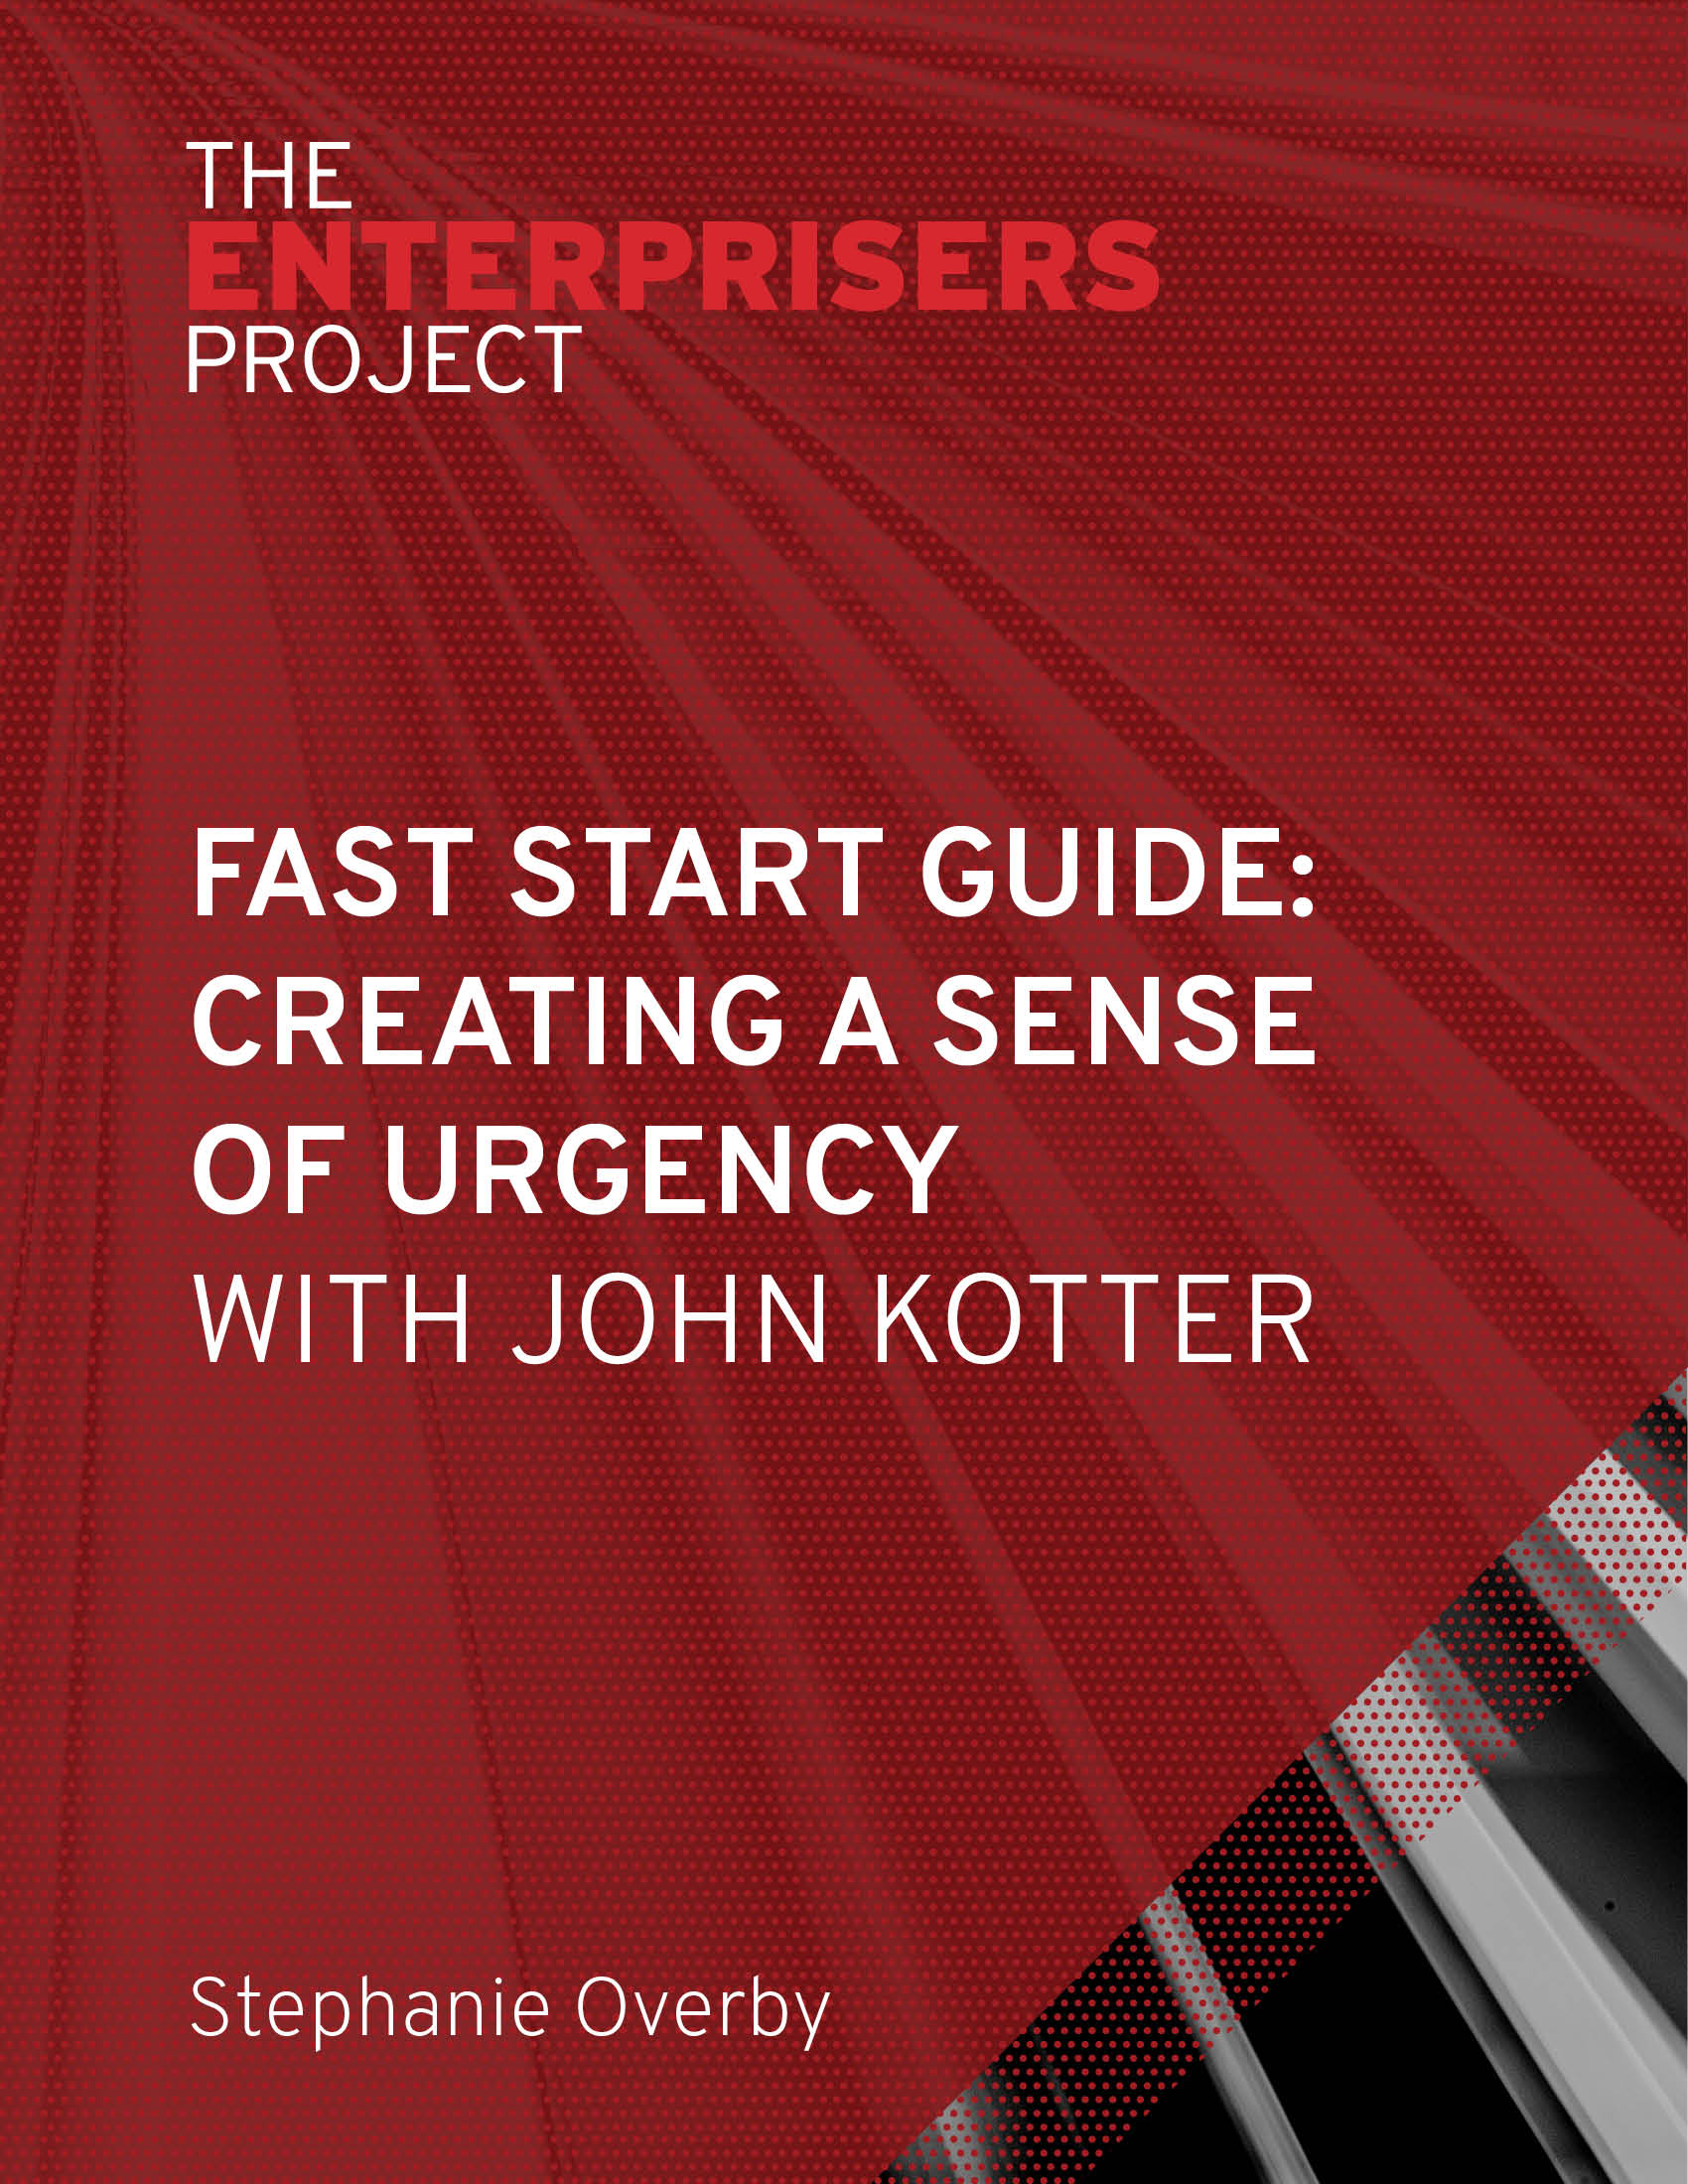 how leaders can create a sense of urgency the enterprisers project